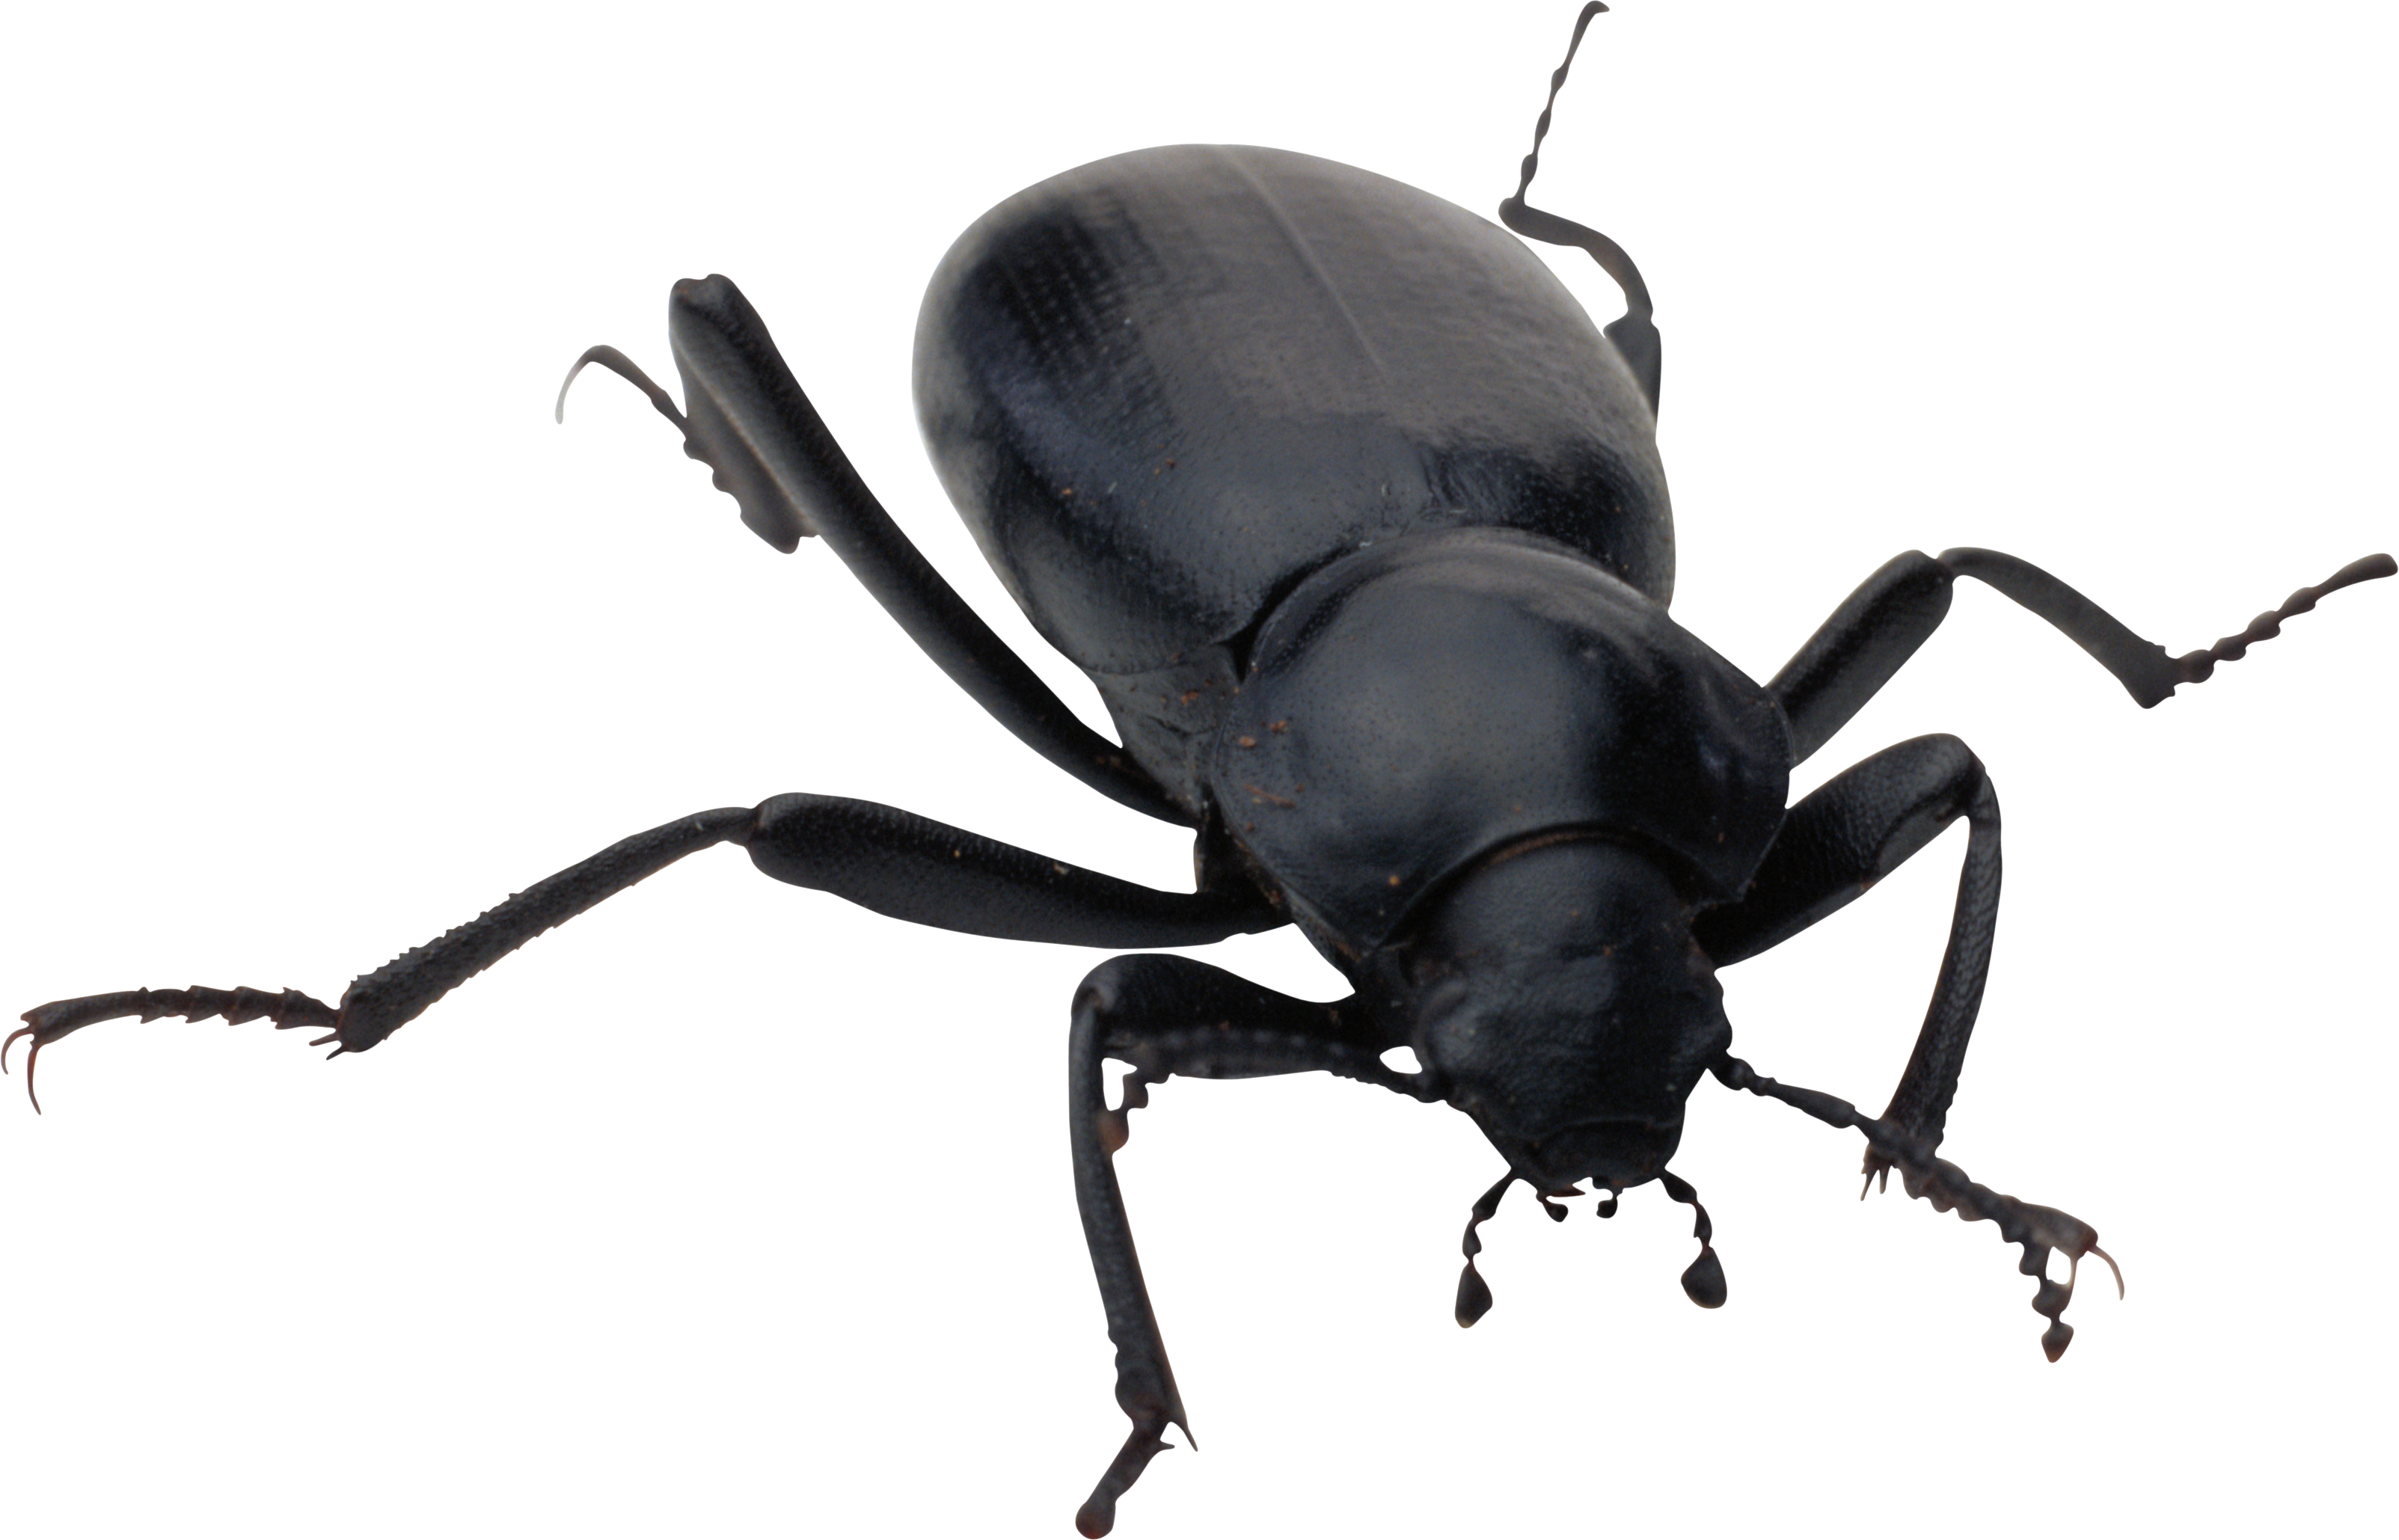 Bug hd png images. Beetle transparent picture royalty free stock